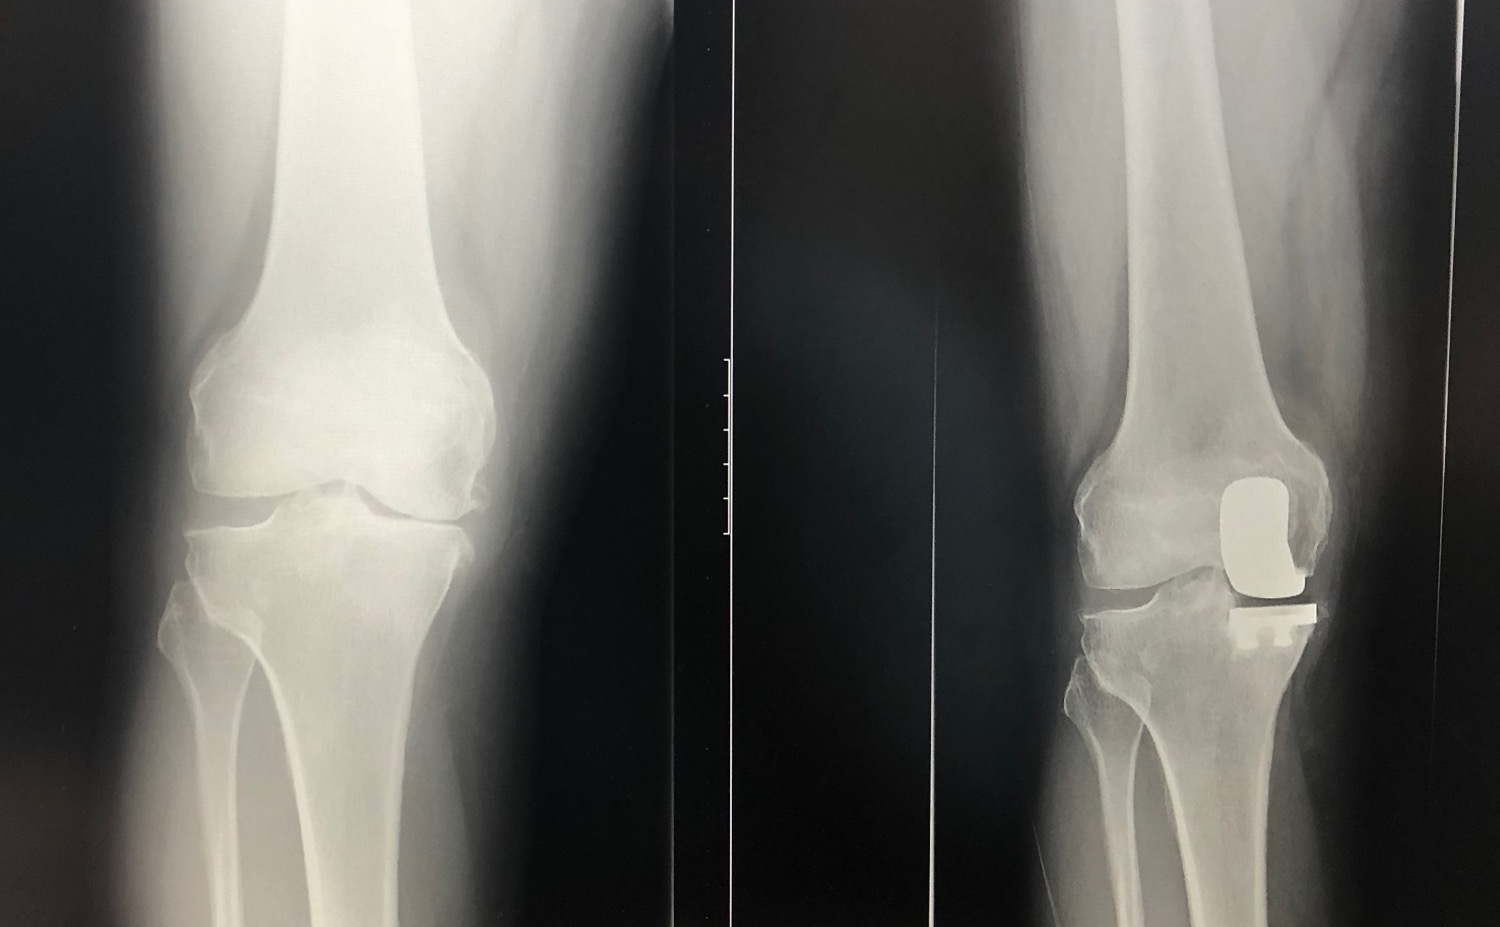 navio partial knee xray image